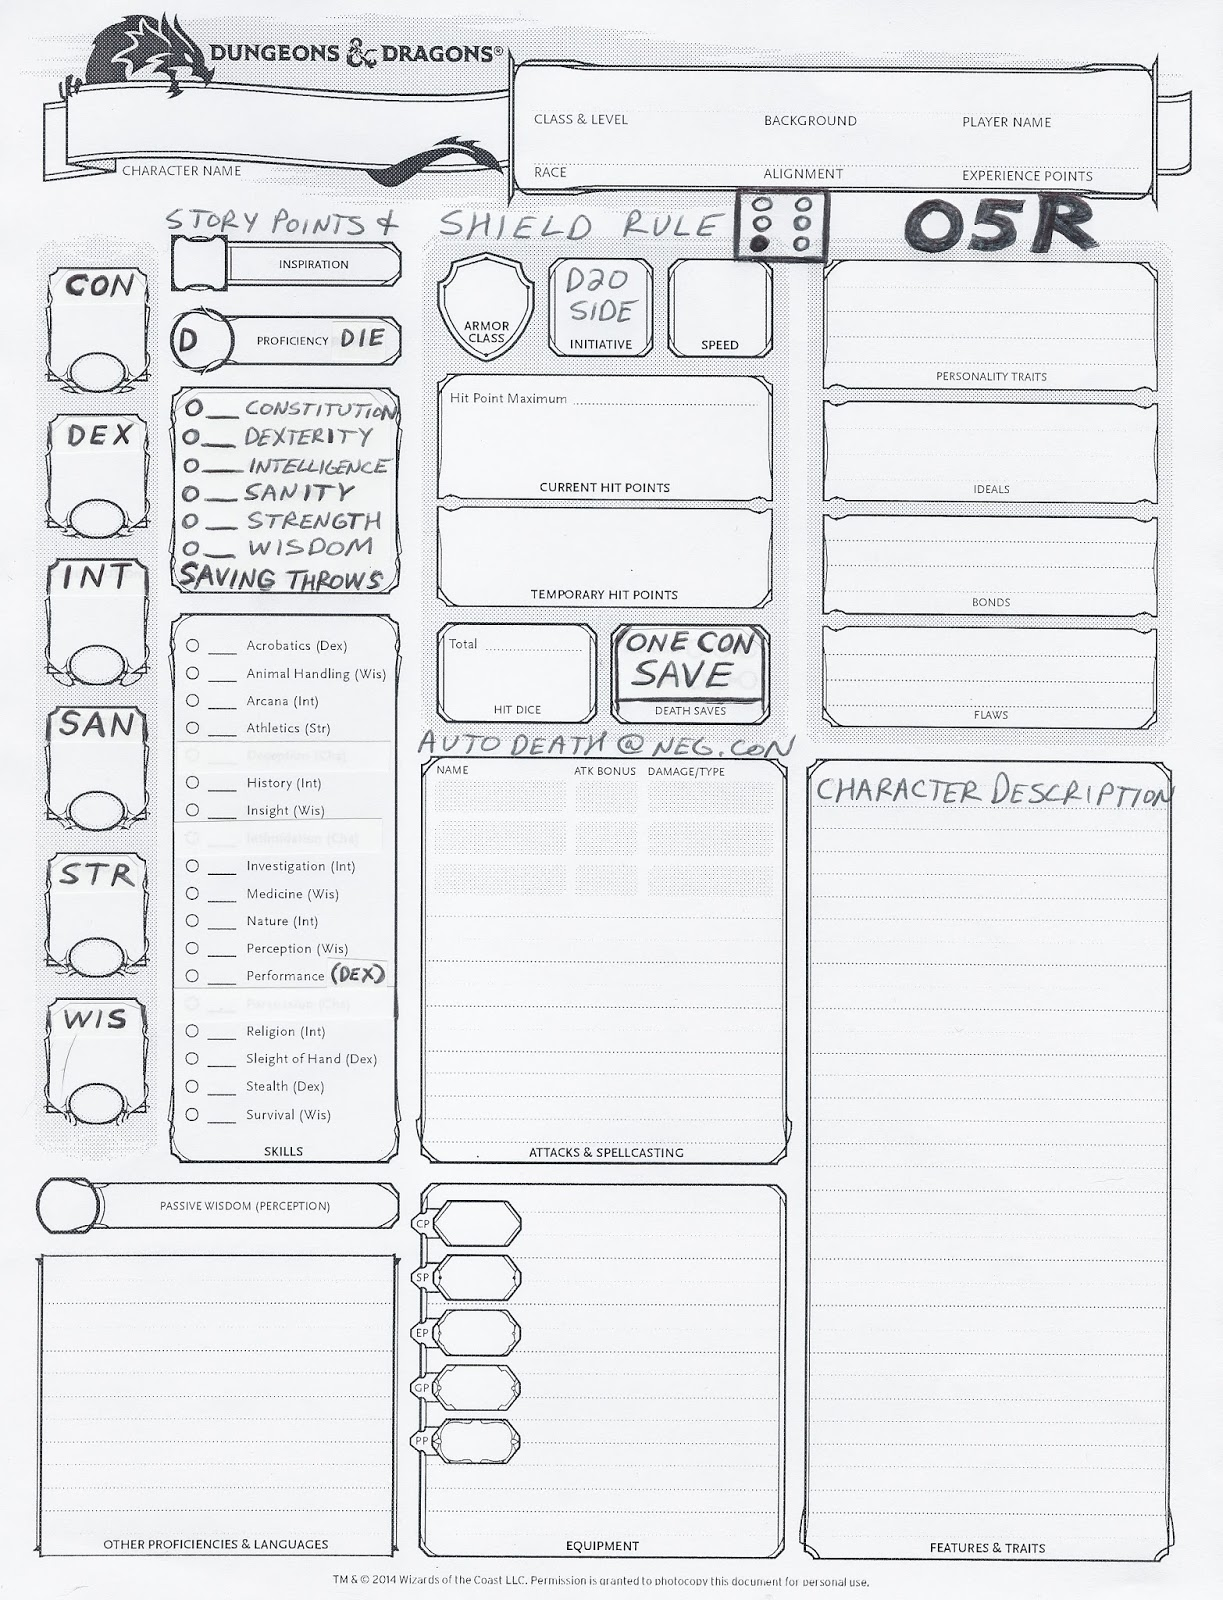 Trust image intended for dungeons and dragons character sheet printable